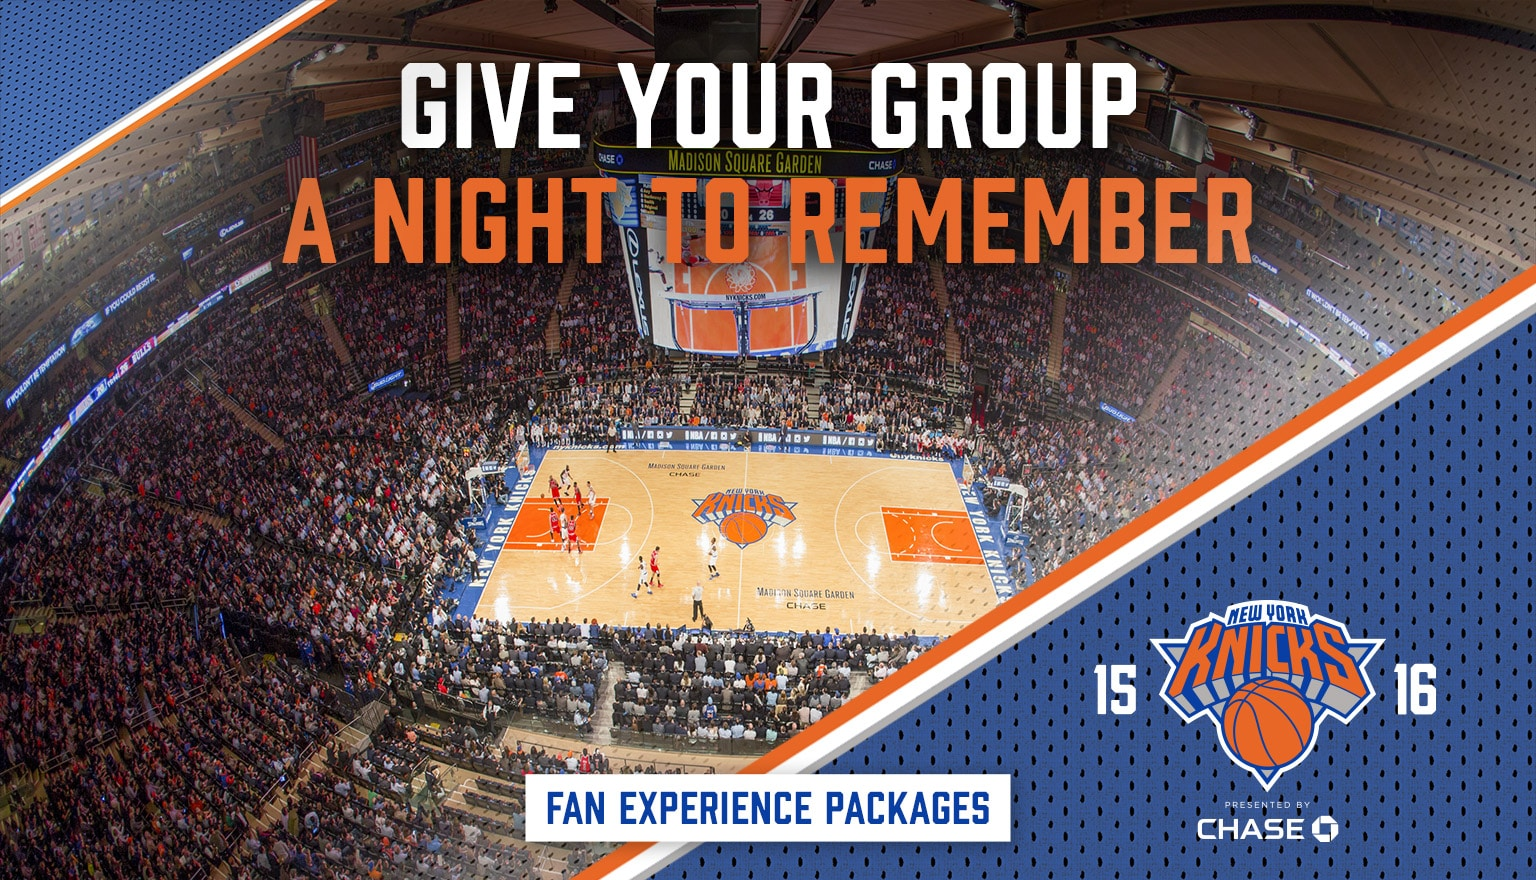 Give your group a NY night to remember - Fan Experience Packages